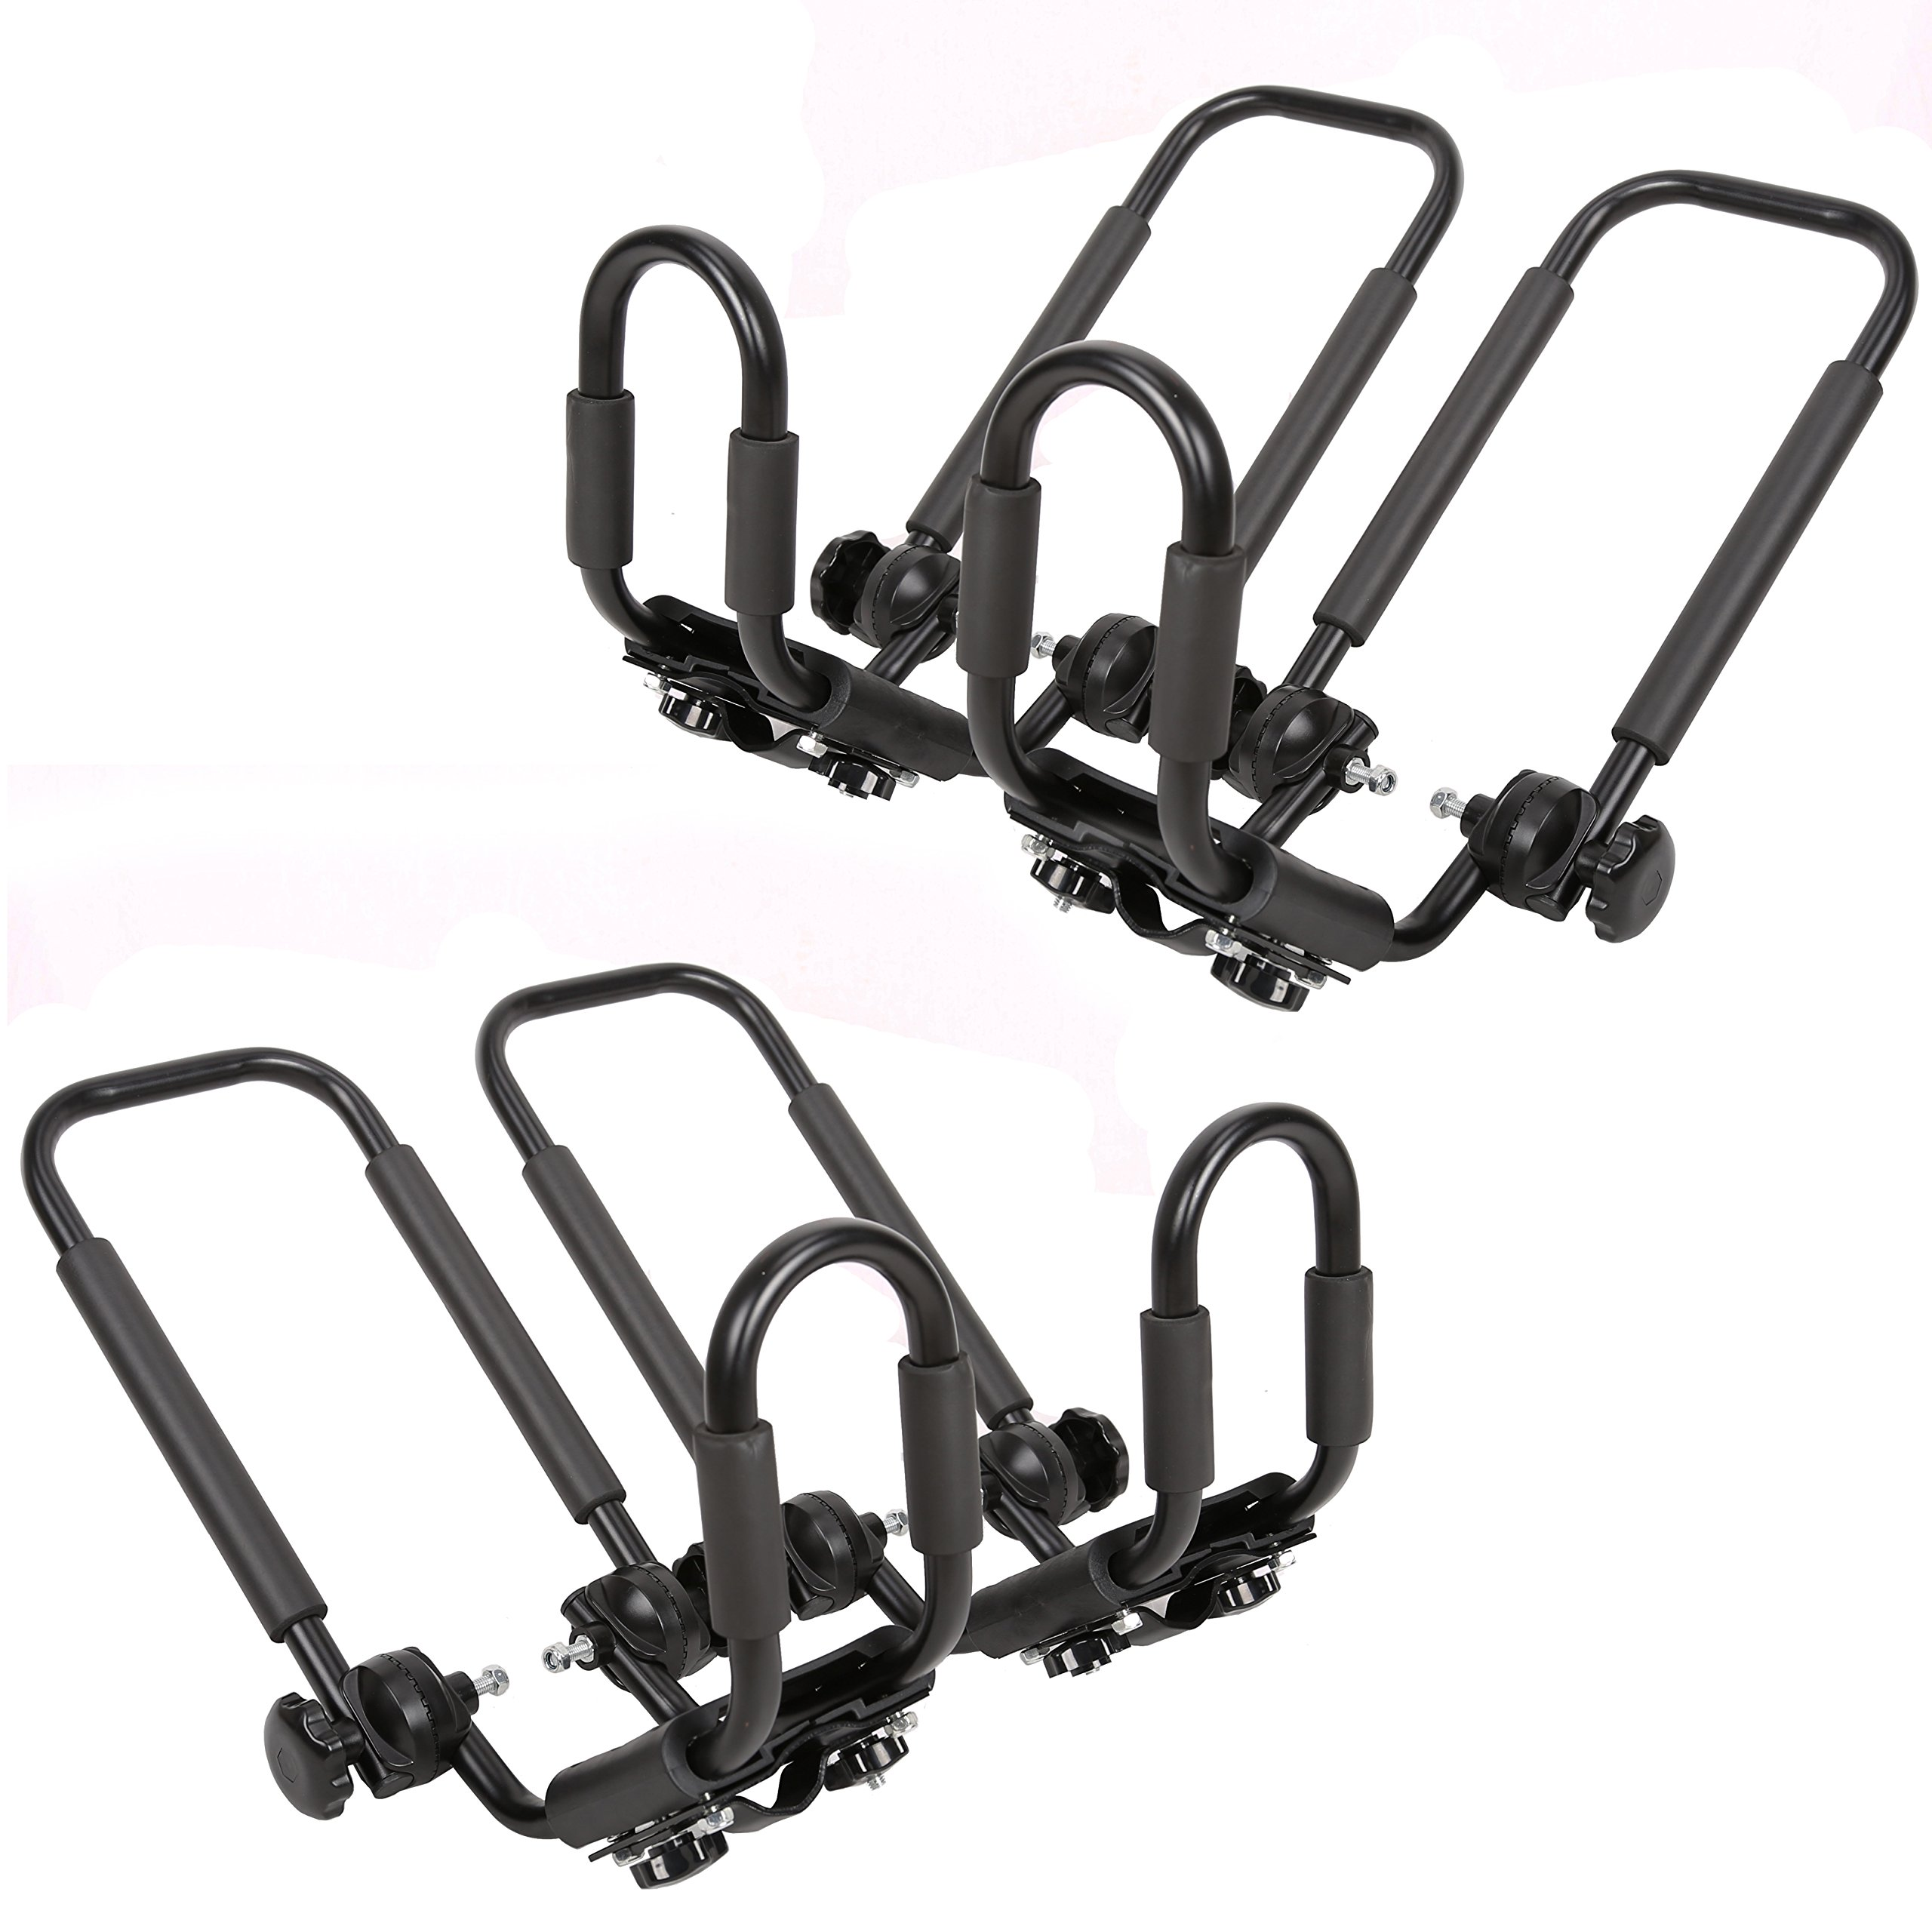 2 Pairs Folding Kayak Carrier Boat Canoe Rack Snowboard J-Bar Roof Top Mounted